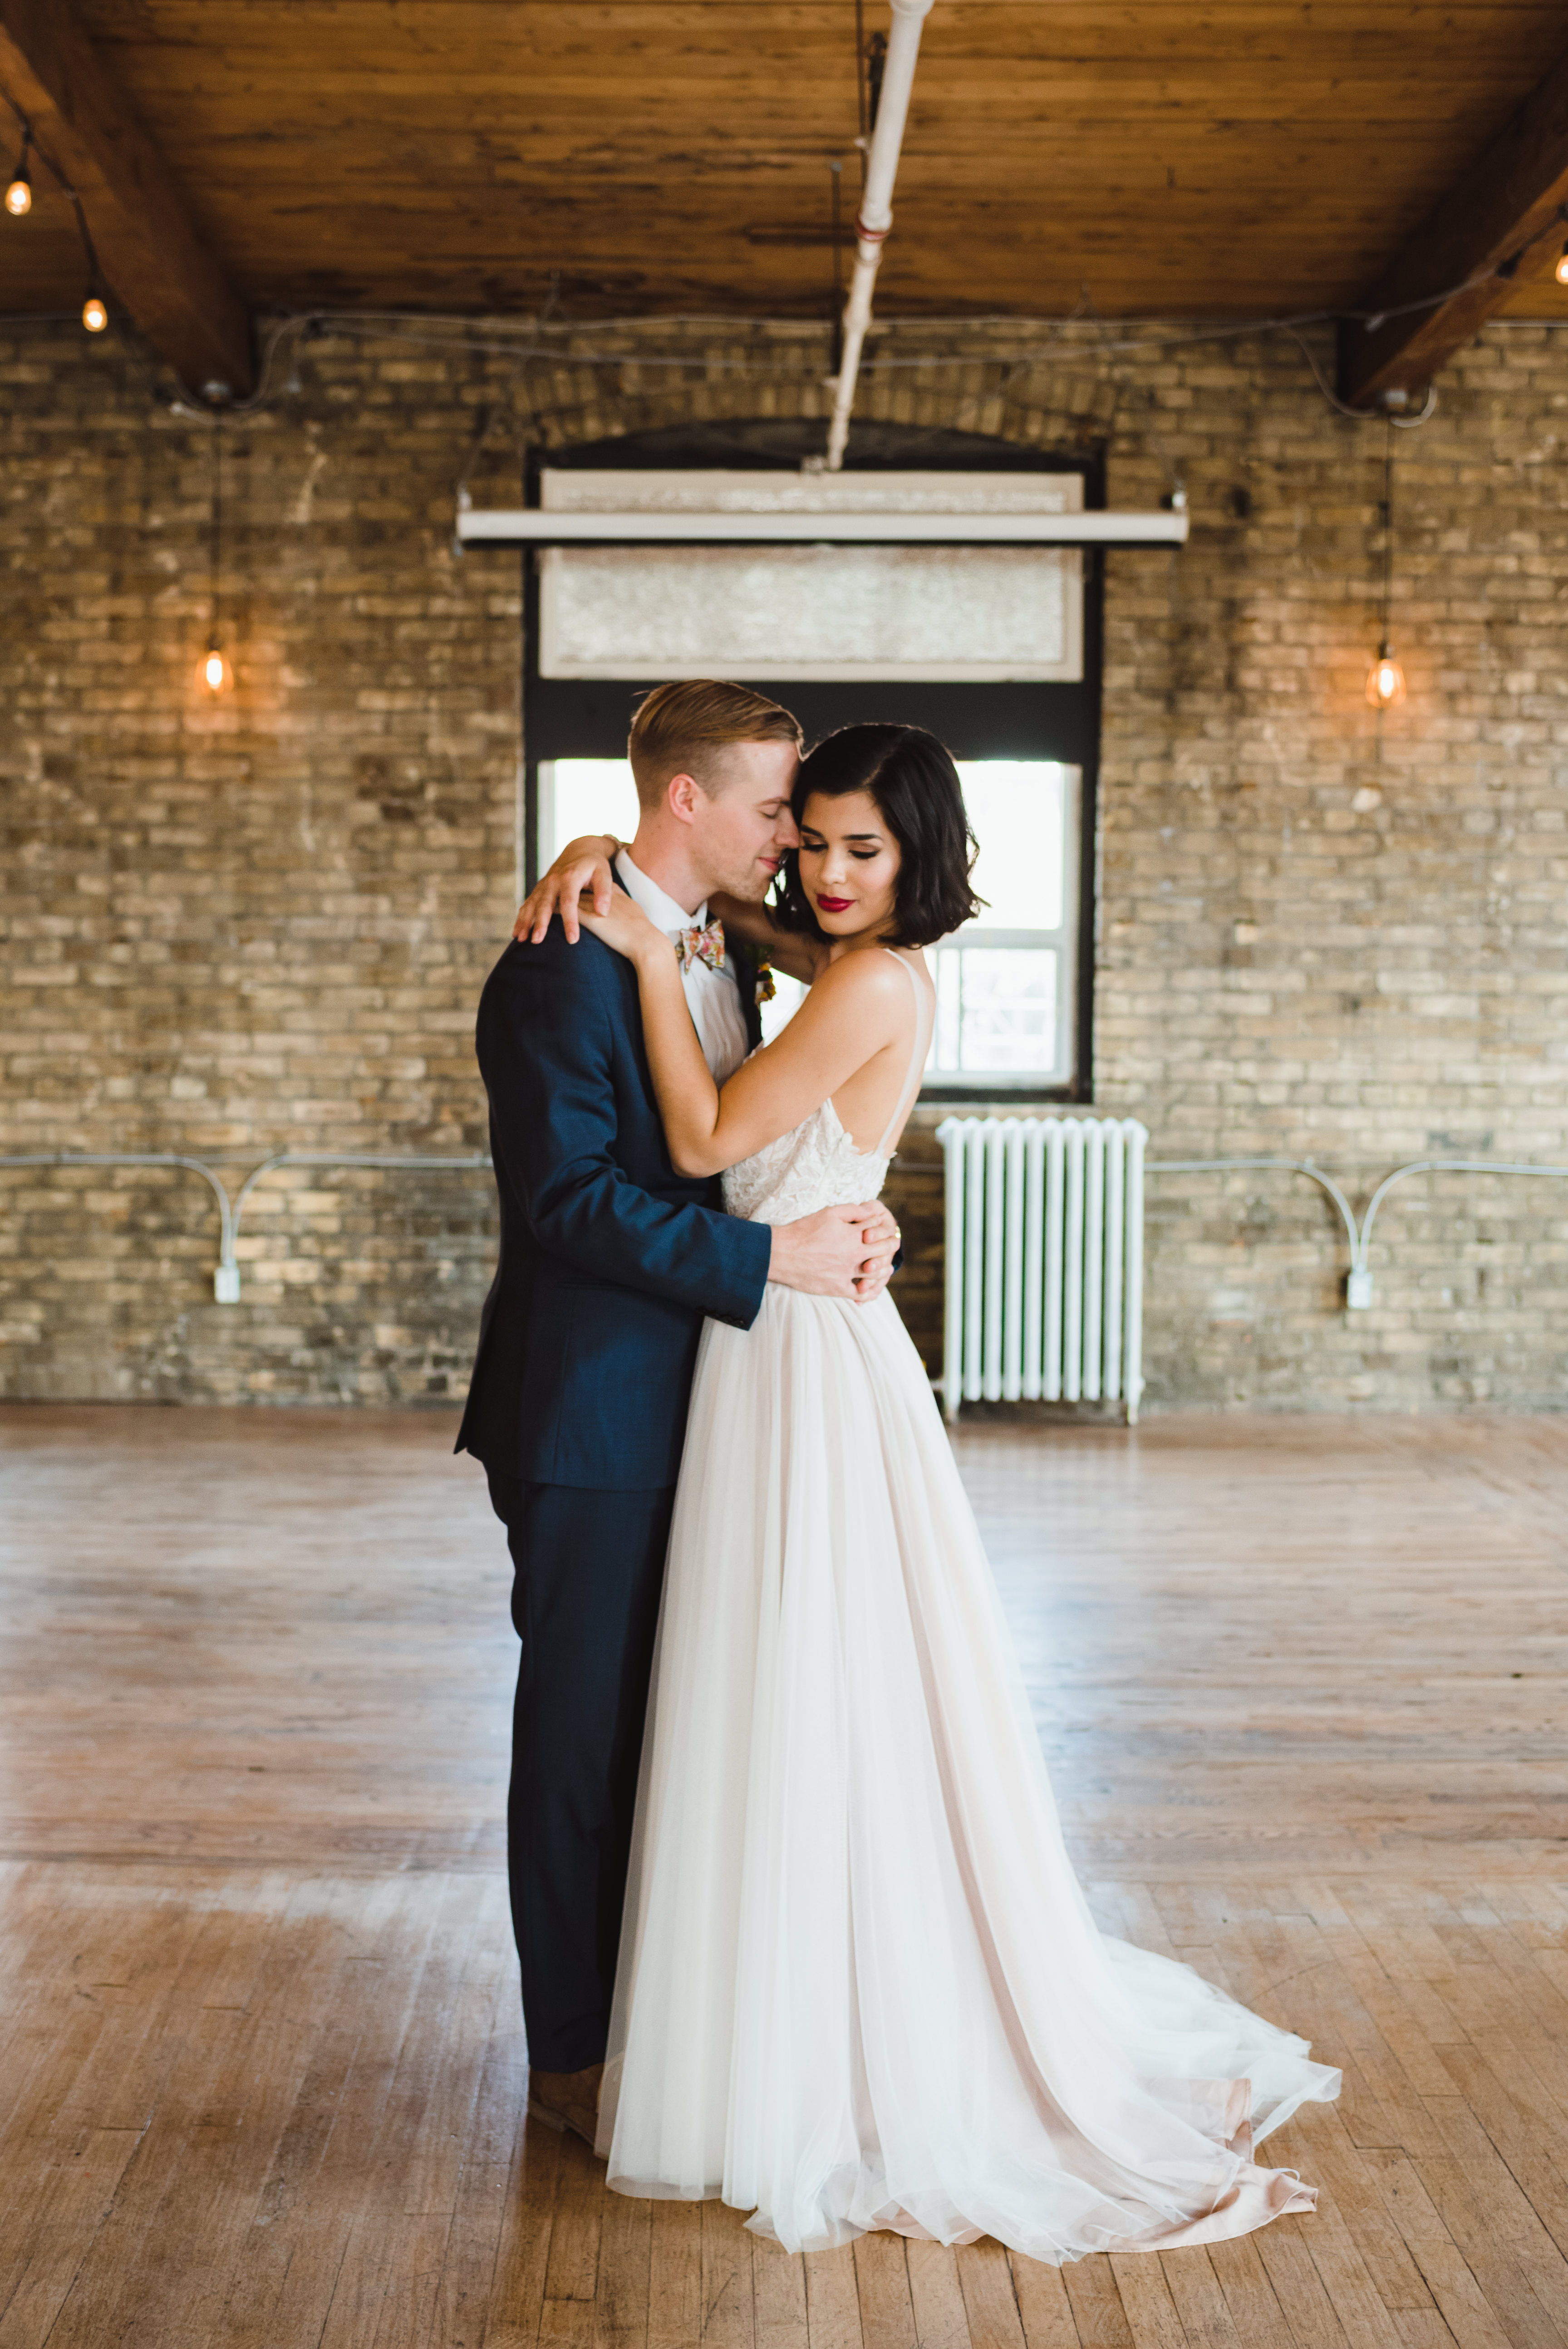 bride and groom loving embrace inside old brick building Toronto wedding photography